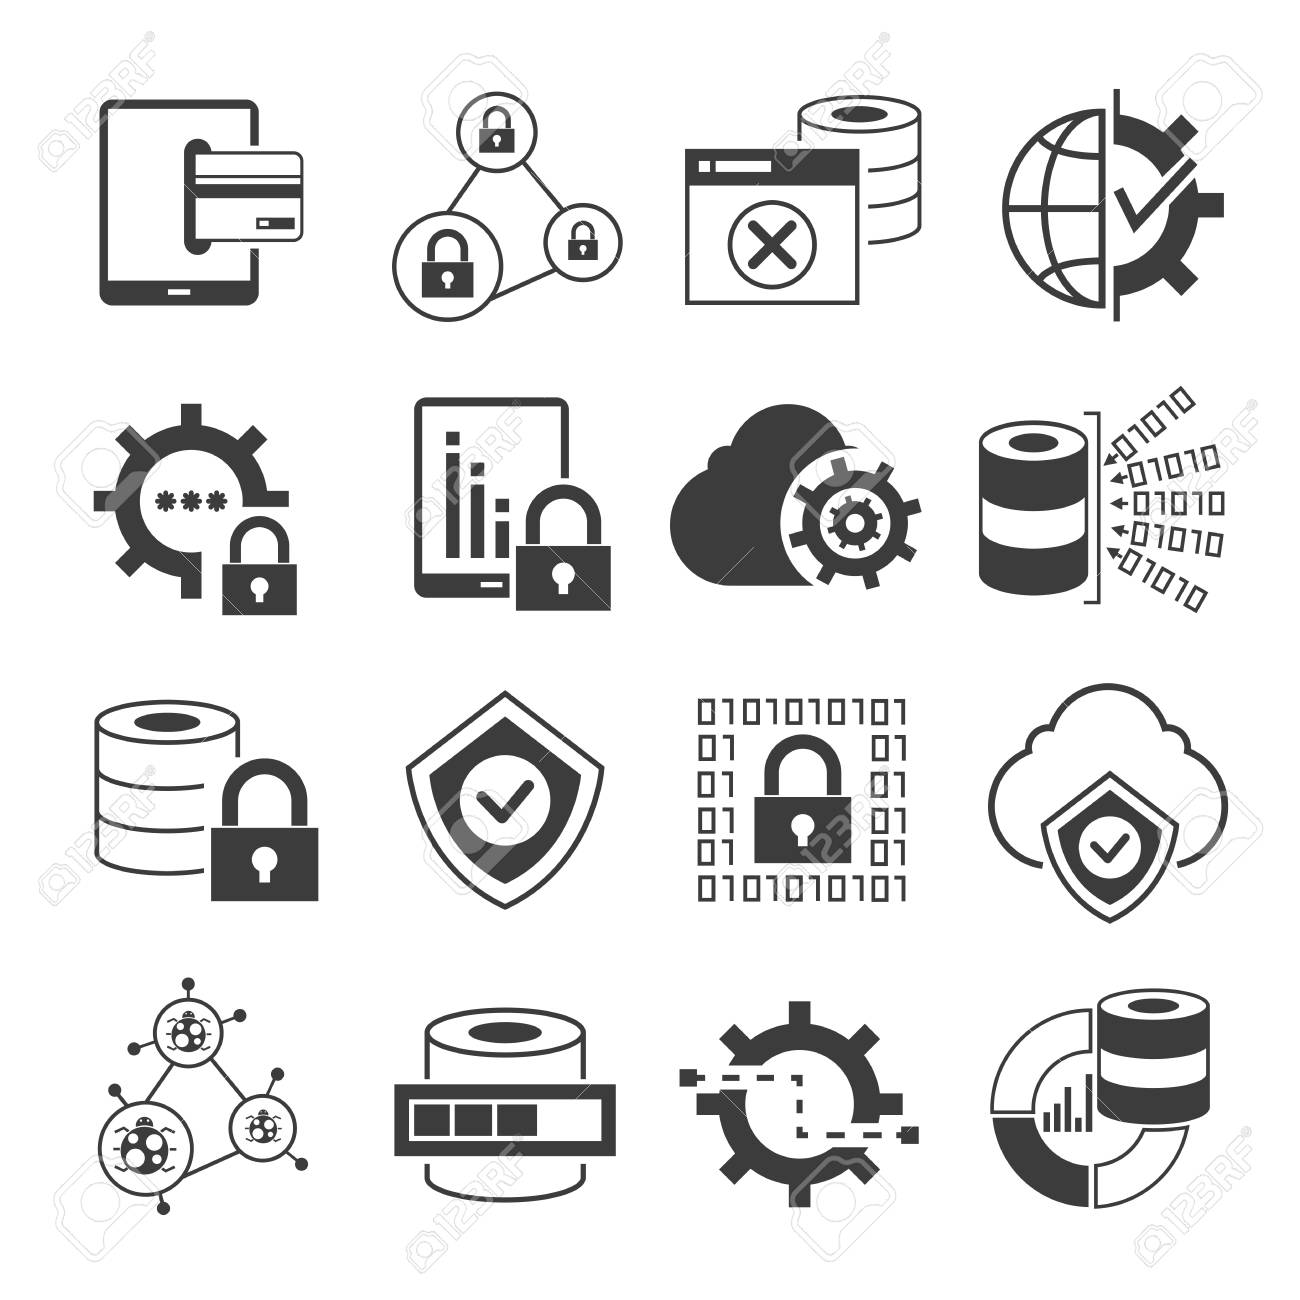 API, data security and network icons